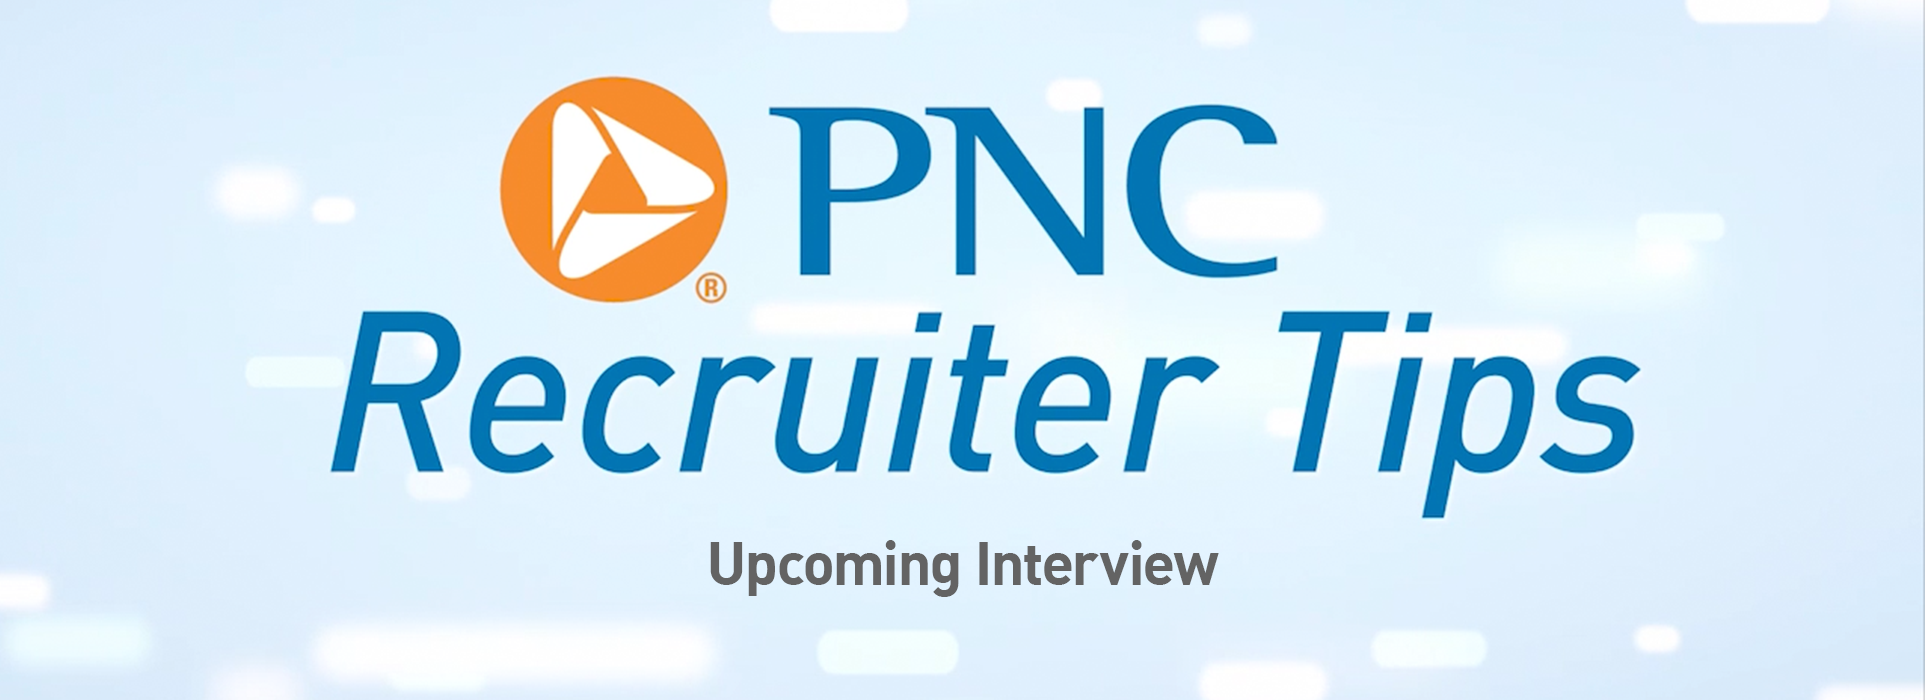 PNC Recruiter Tips: Upcoming Interview